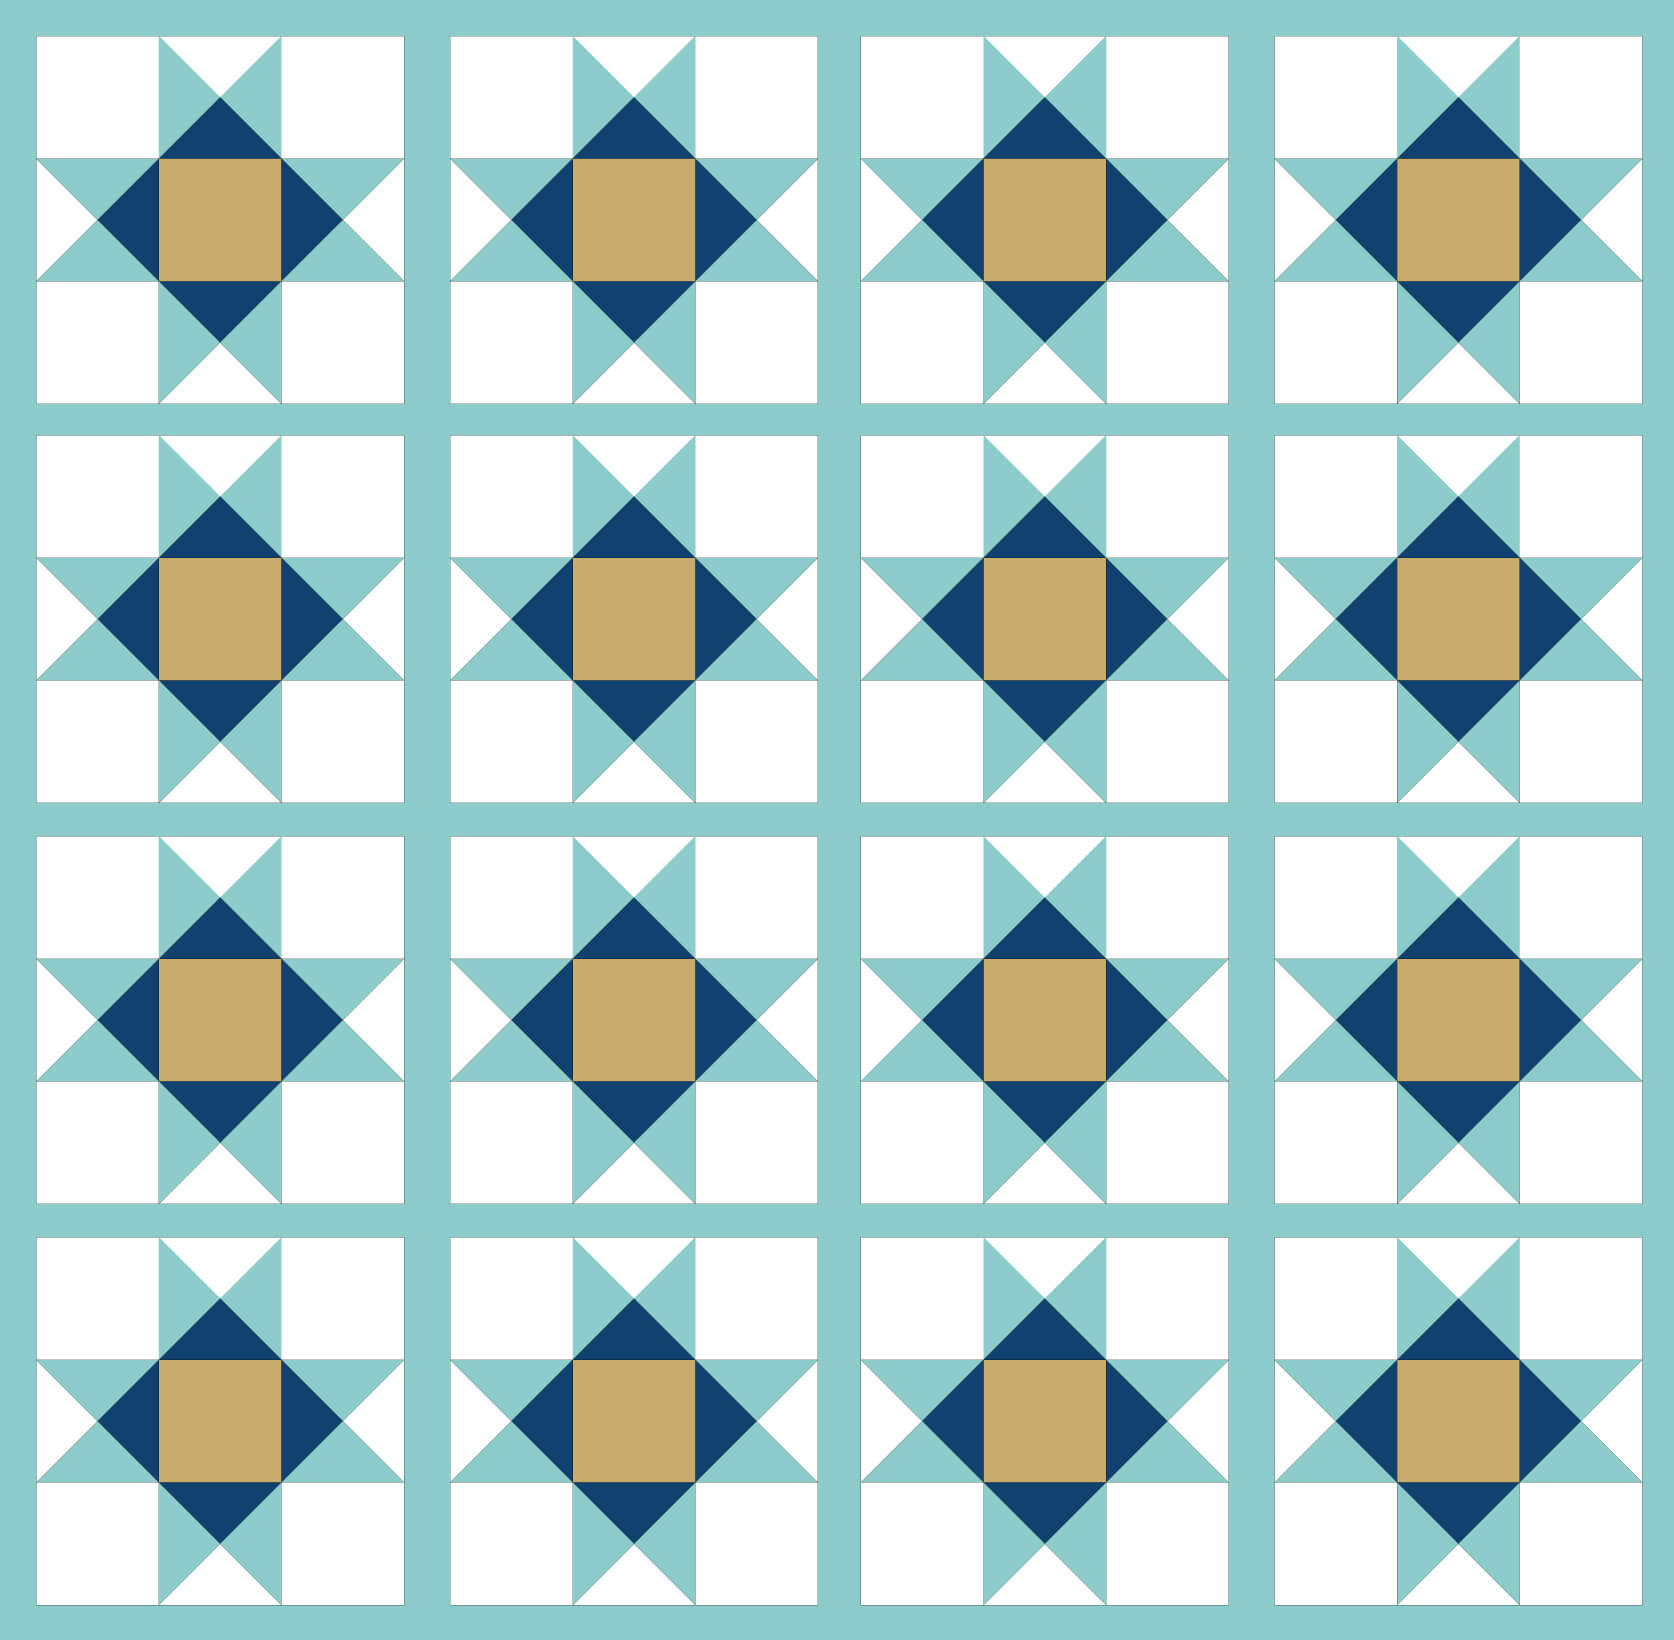 Illustration of a Quilt made with Ohio Star Quilt Blocks with sashing